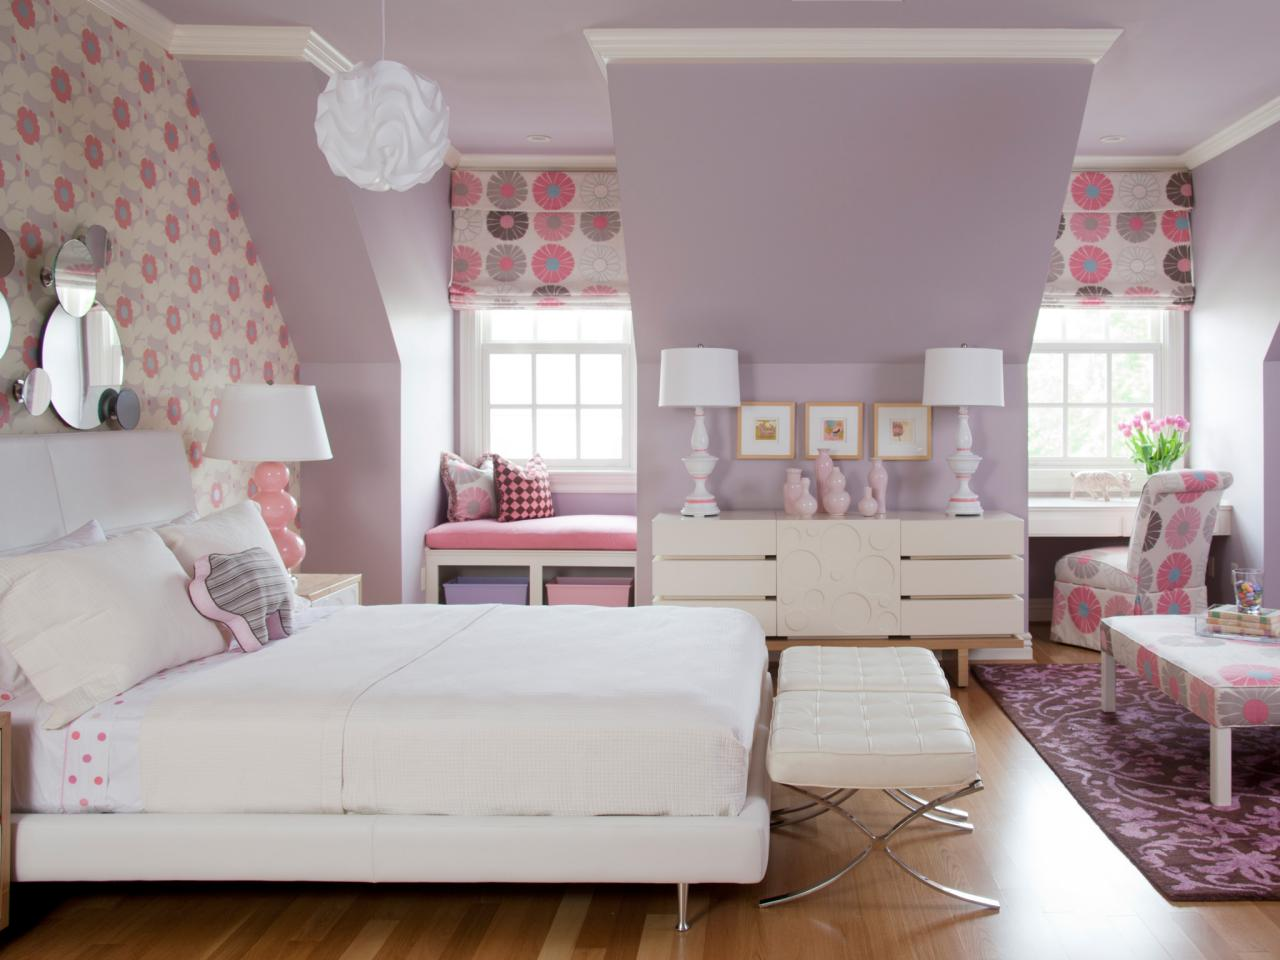 Bedroom color design for girls - Coral And Kelly Green Bedroom